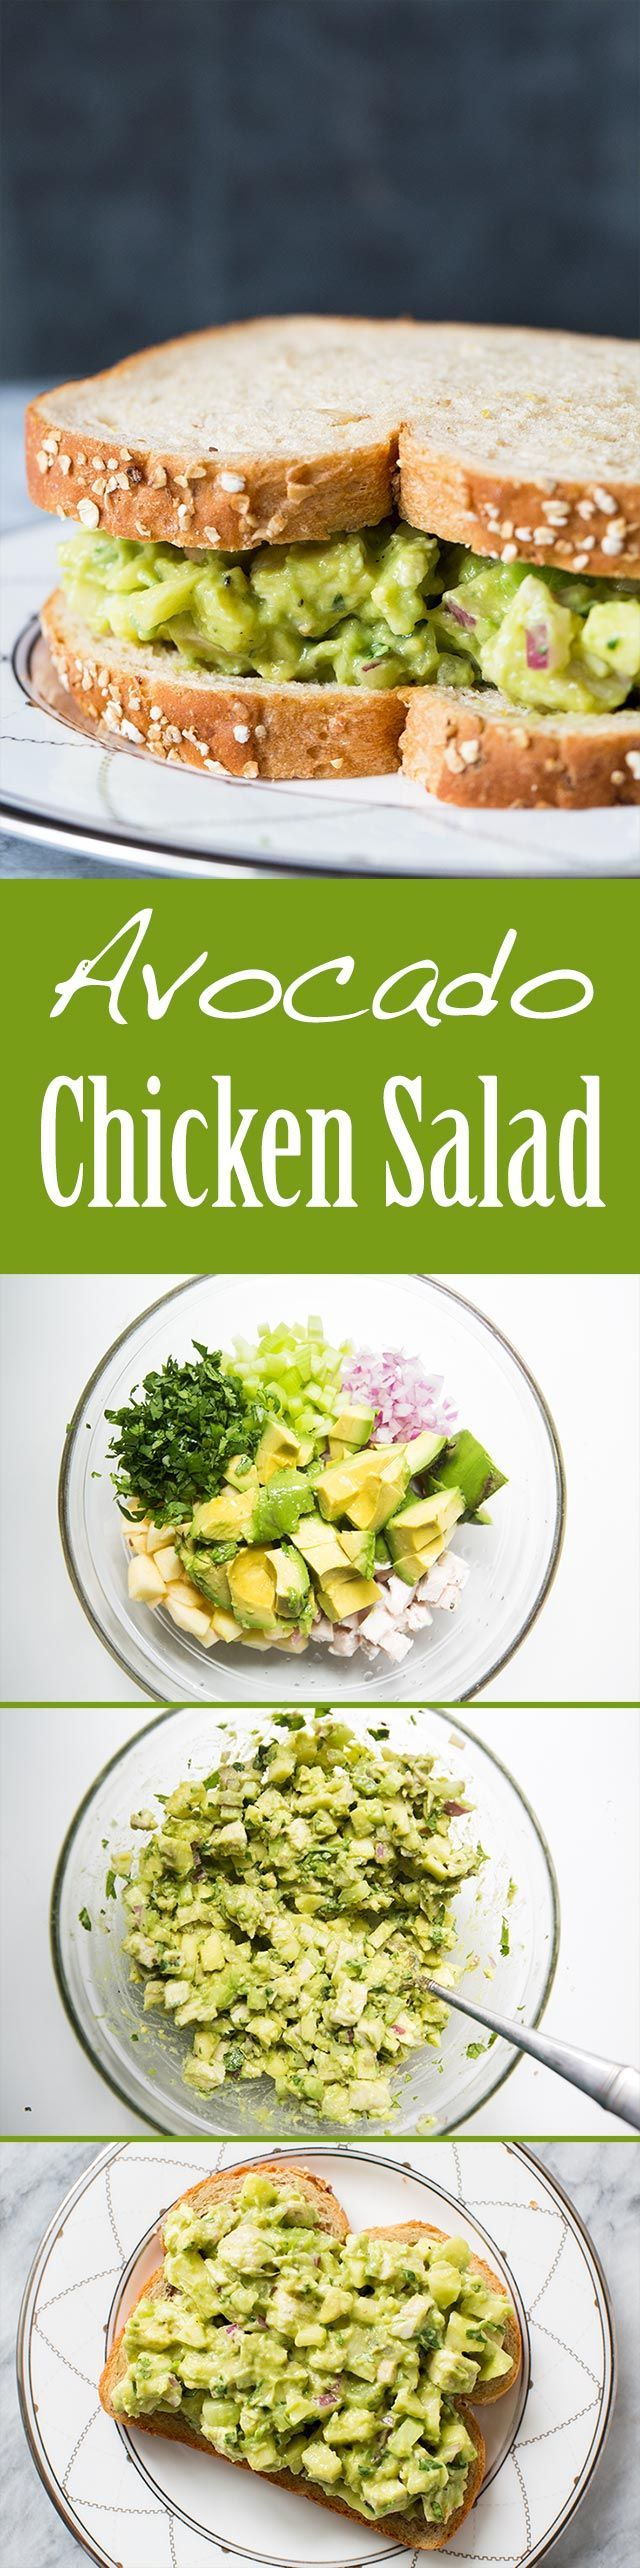 Avocado Chicken Salad ~ Easy and Healthy! Avocado chicken salad with avocado, chopped cooked chicken, apple, celery, and onion. No Mayo! ~ SimplyRecipes.com